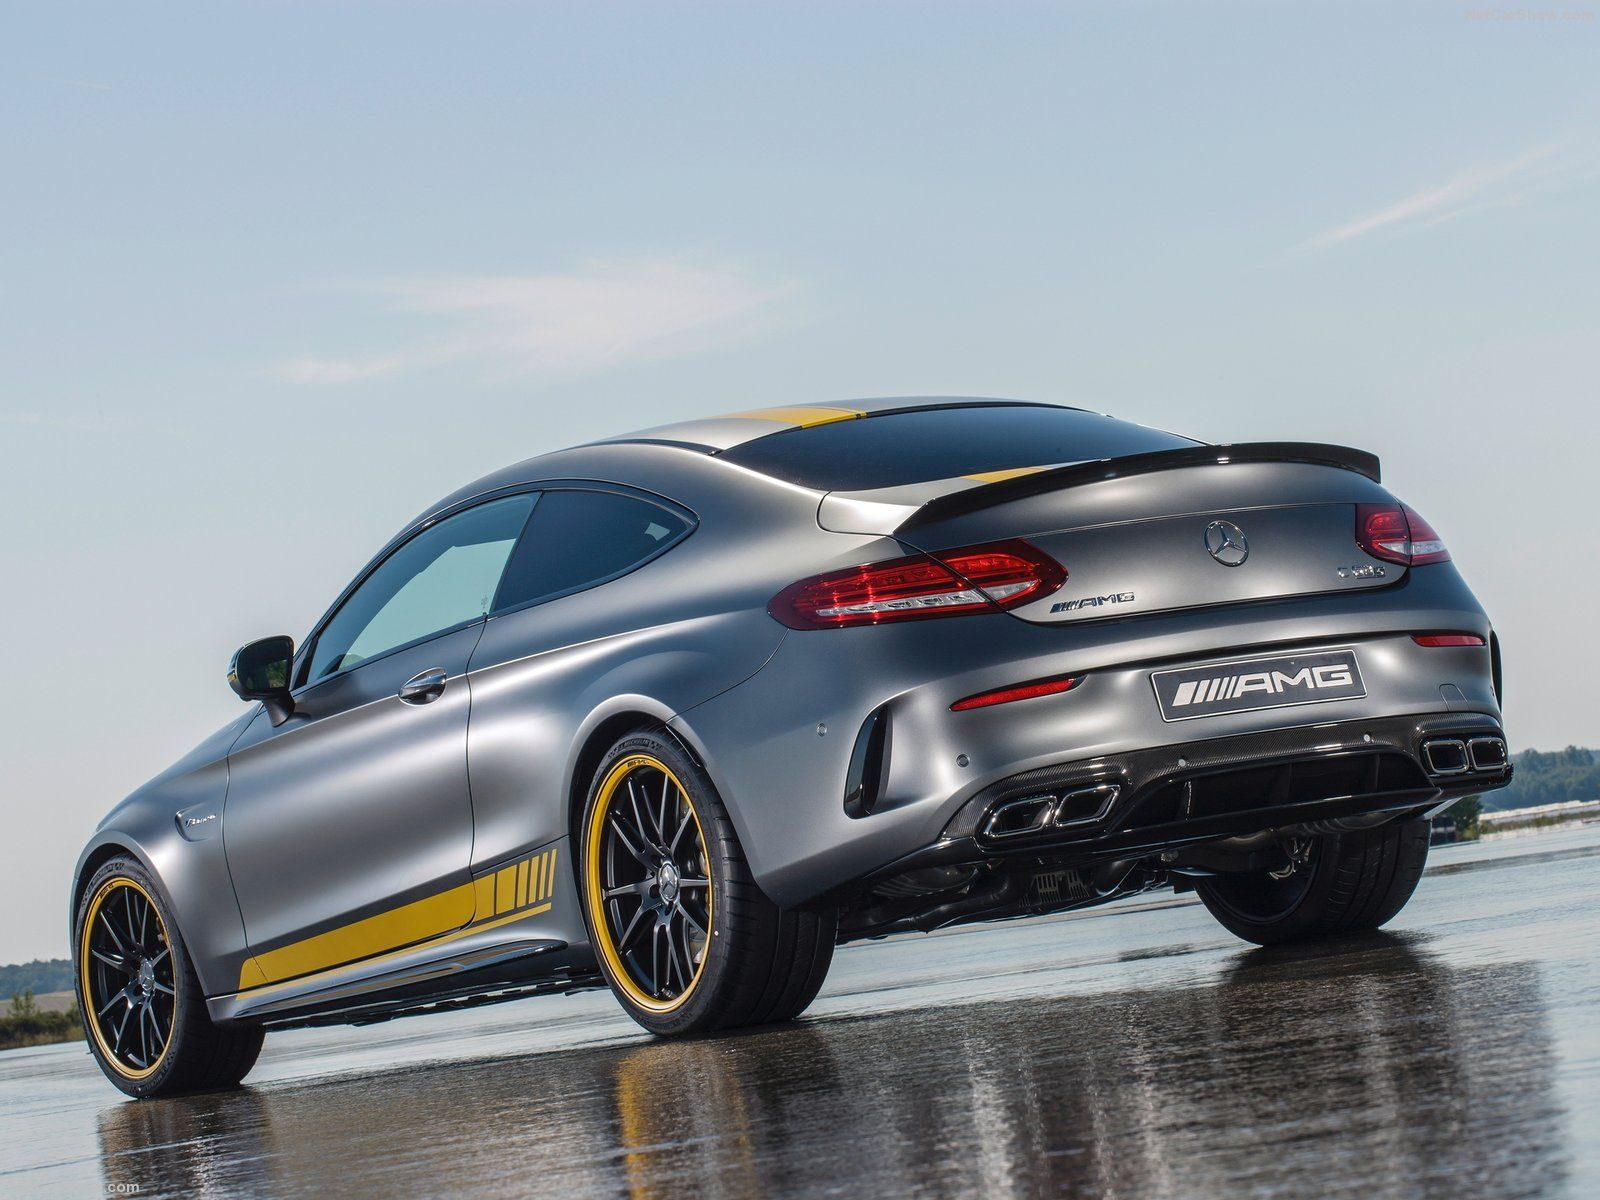 Mercedes Benz C63 AMG Coupe Edition 1 2017 (1600x1200 ...